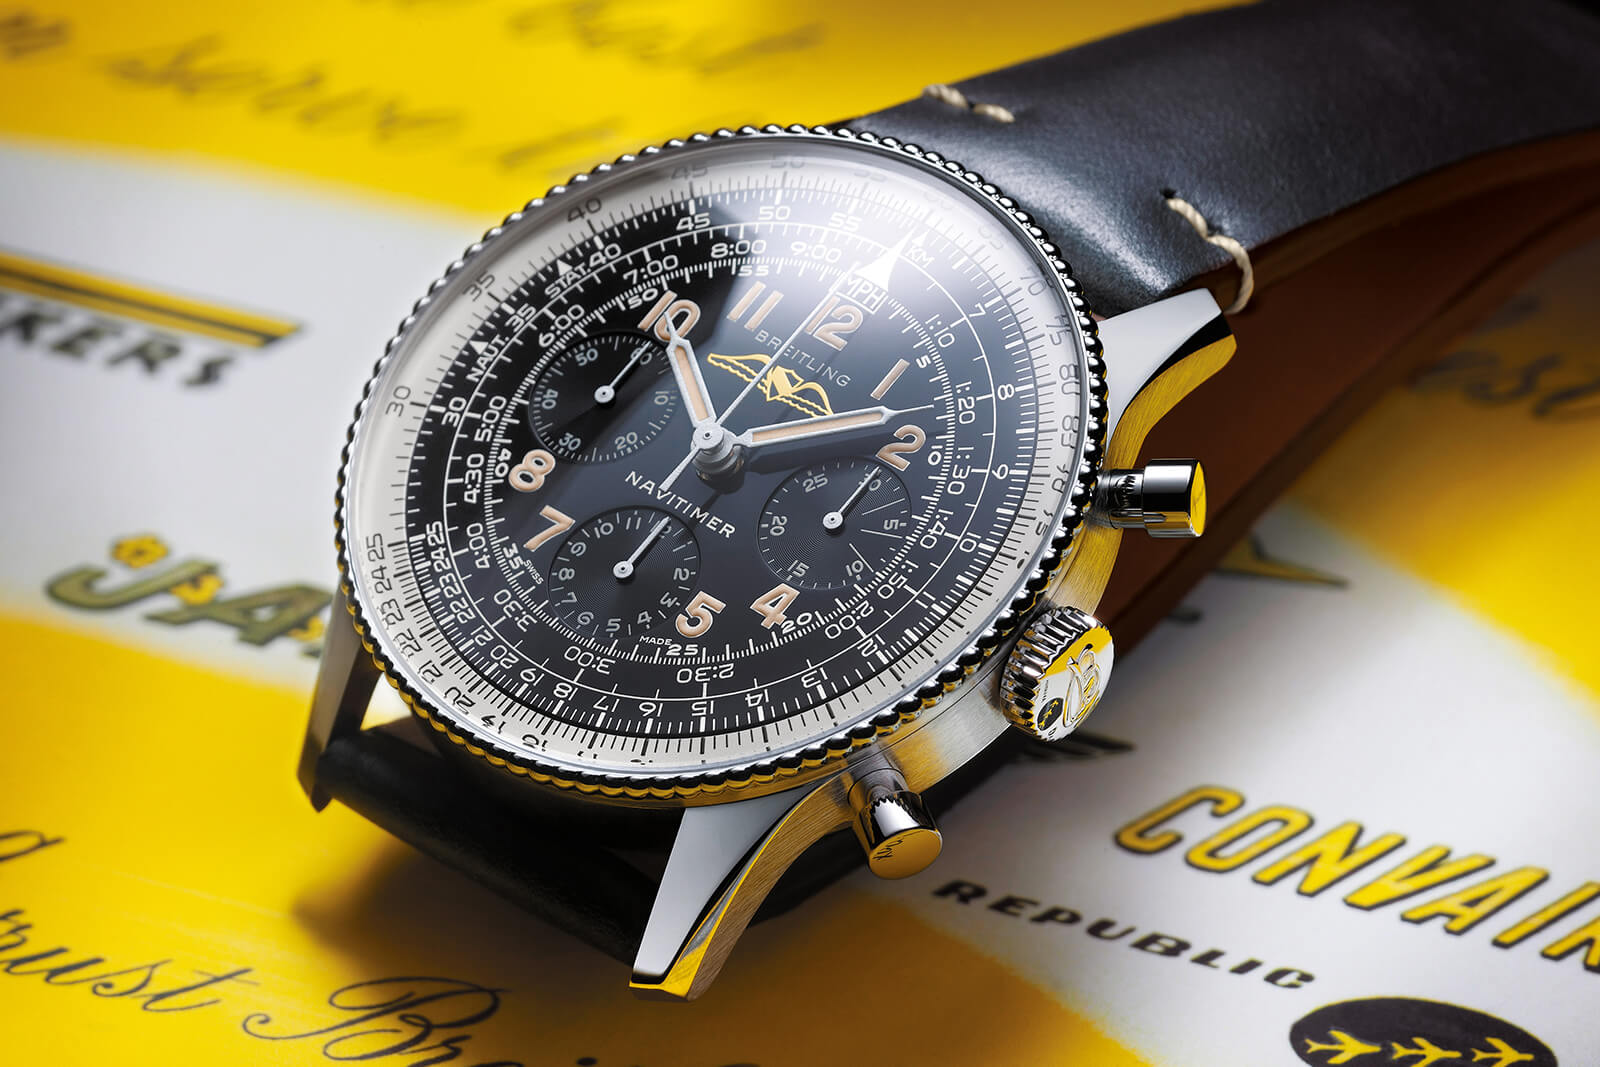 d31dda71485 Introducing the Breitling Navitimer Ref. 806 1959 Re-Edition ...